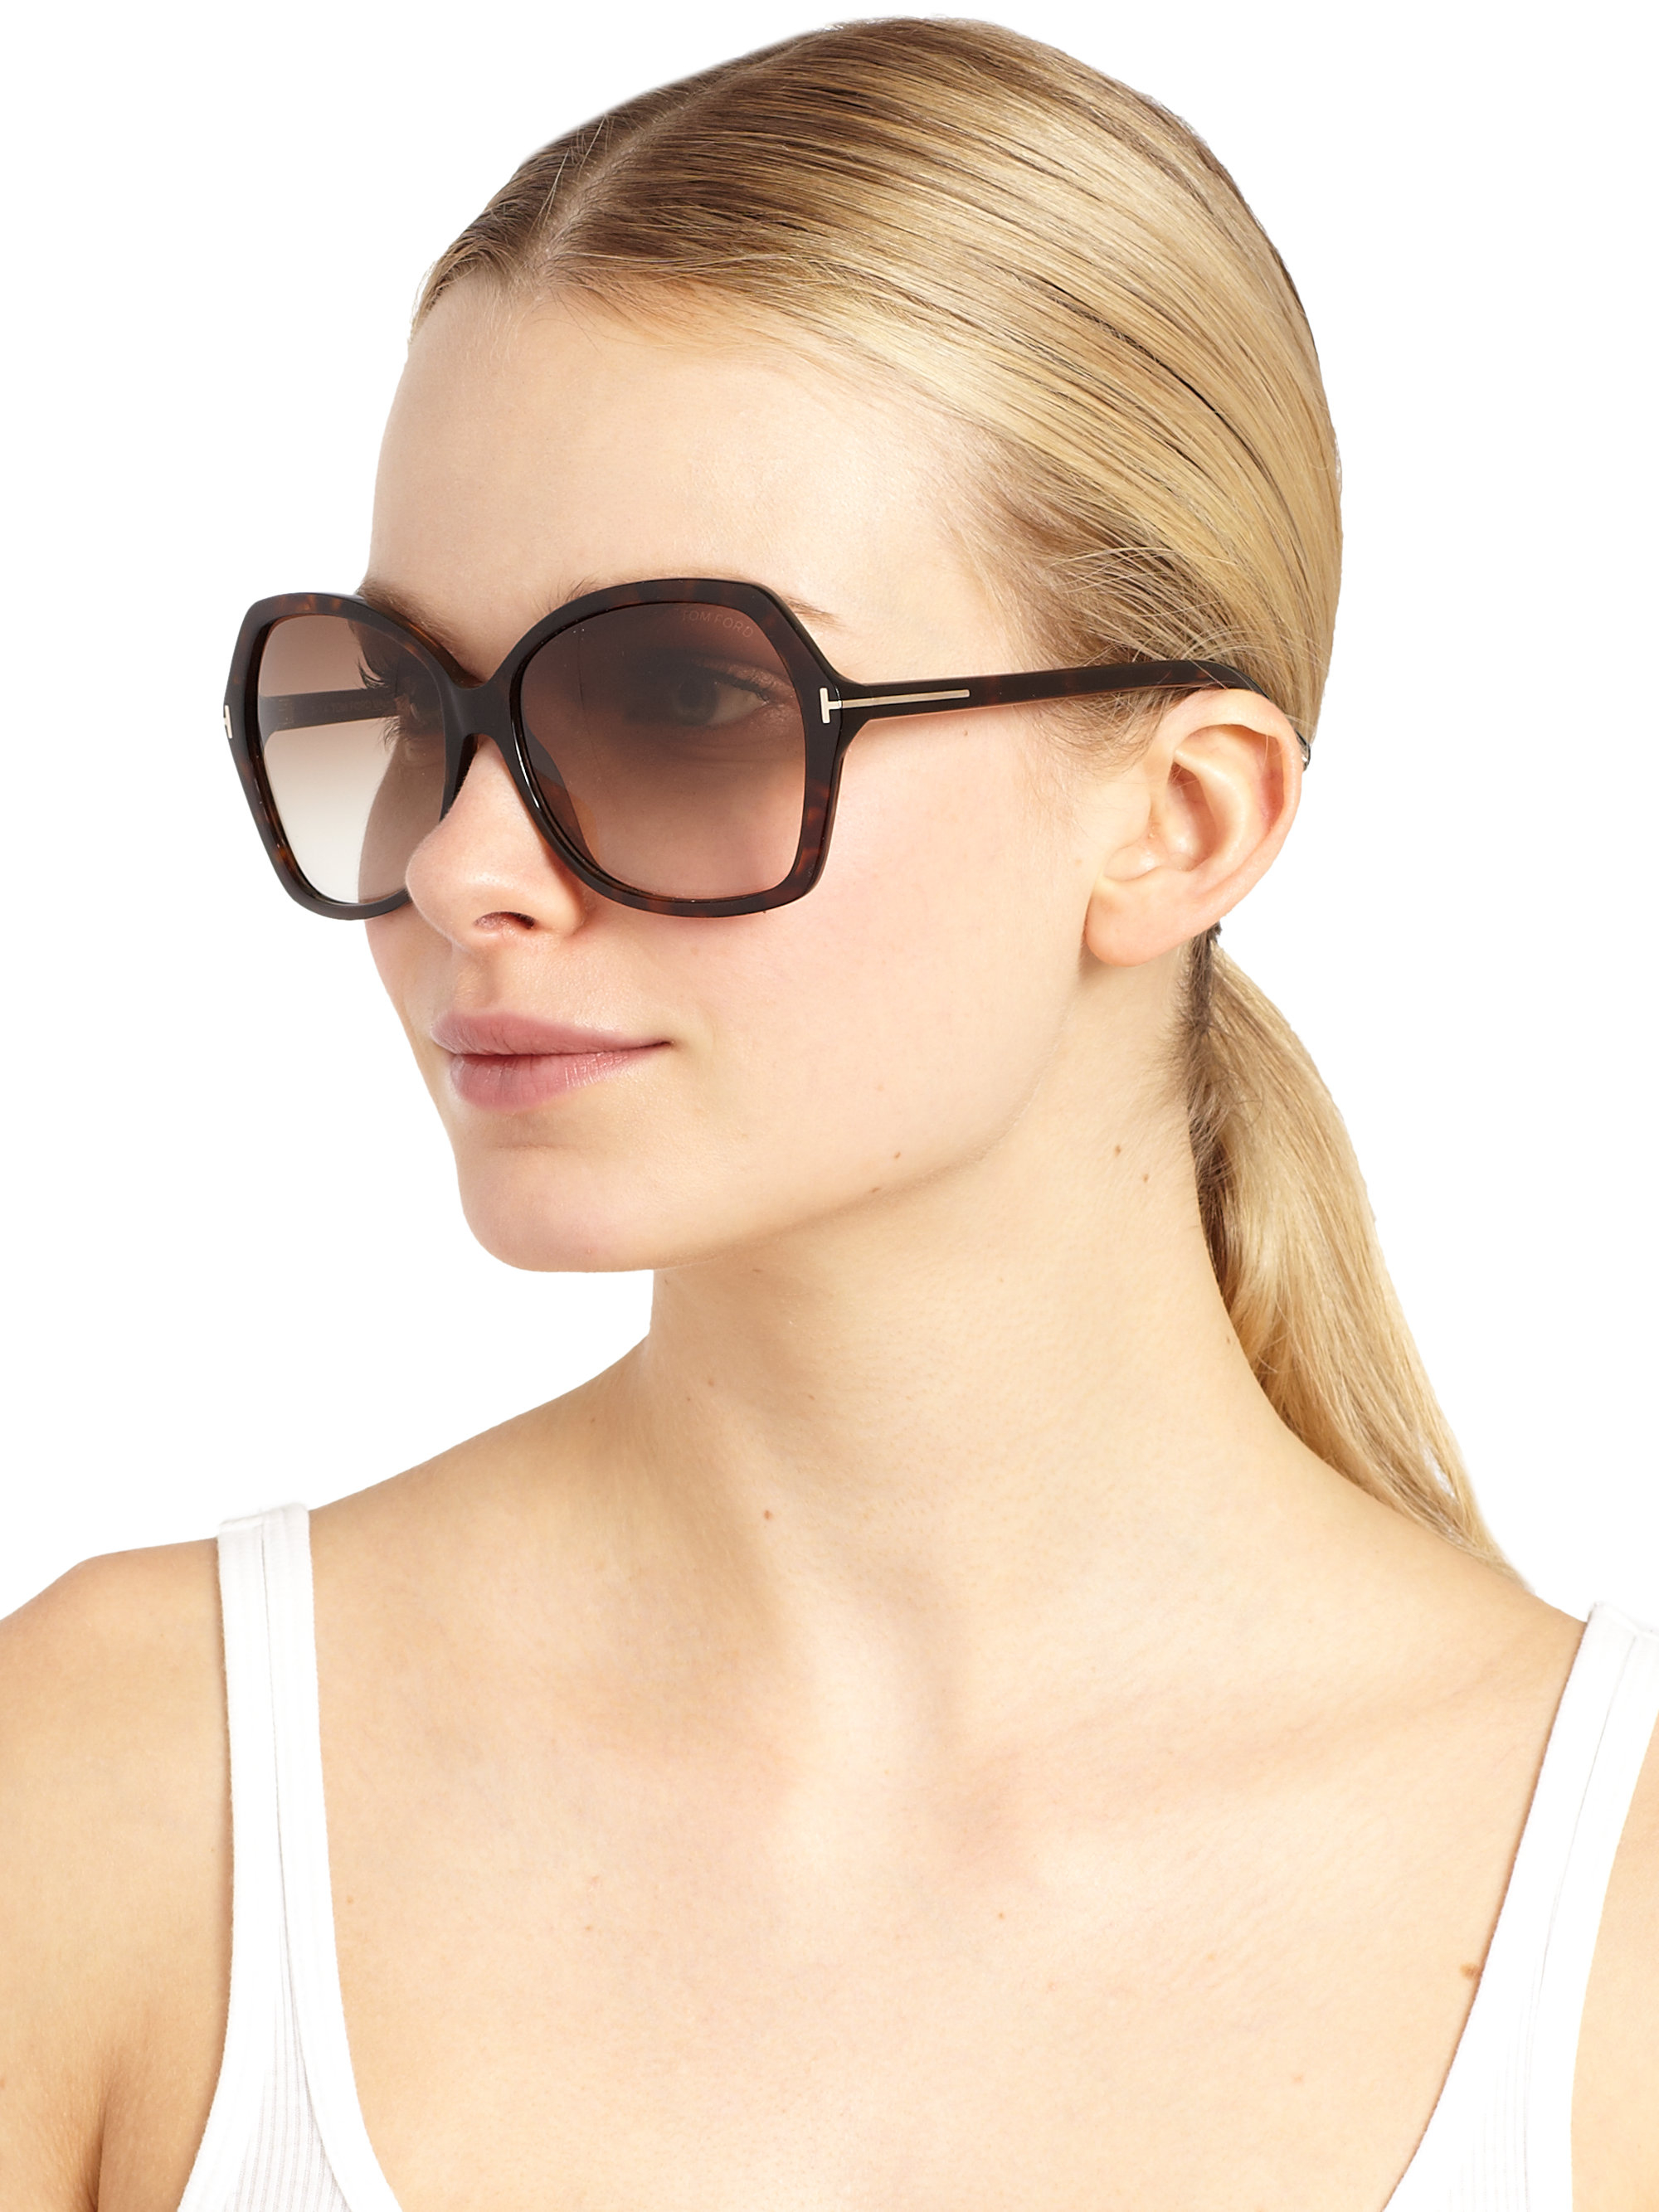 9ad38f16e22e Gallery. Previously sold at  Saks Fifth Avenue · Women s Gold Sunglasses  Women s Blue Sunglasses Women s Tom Ford ...